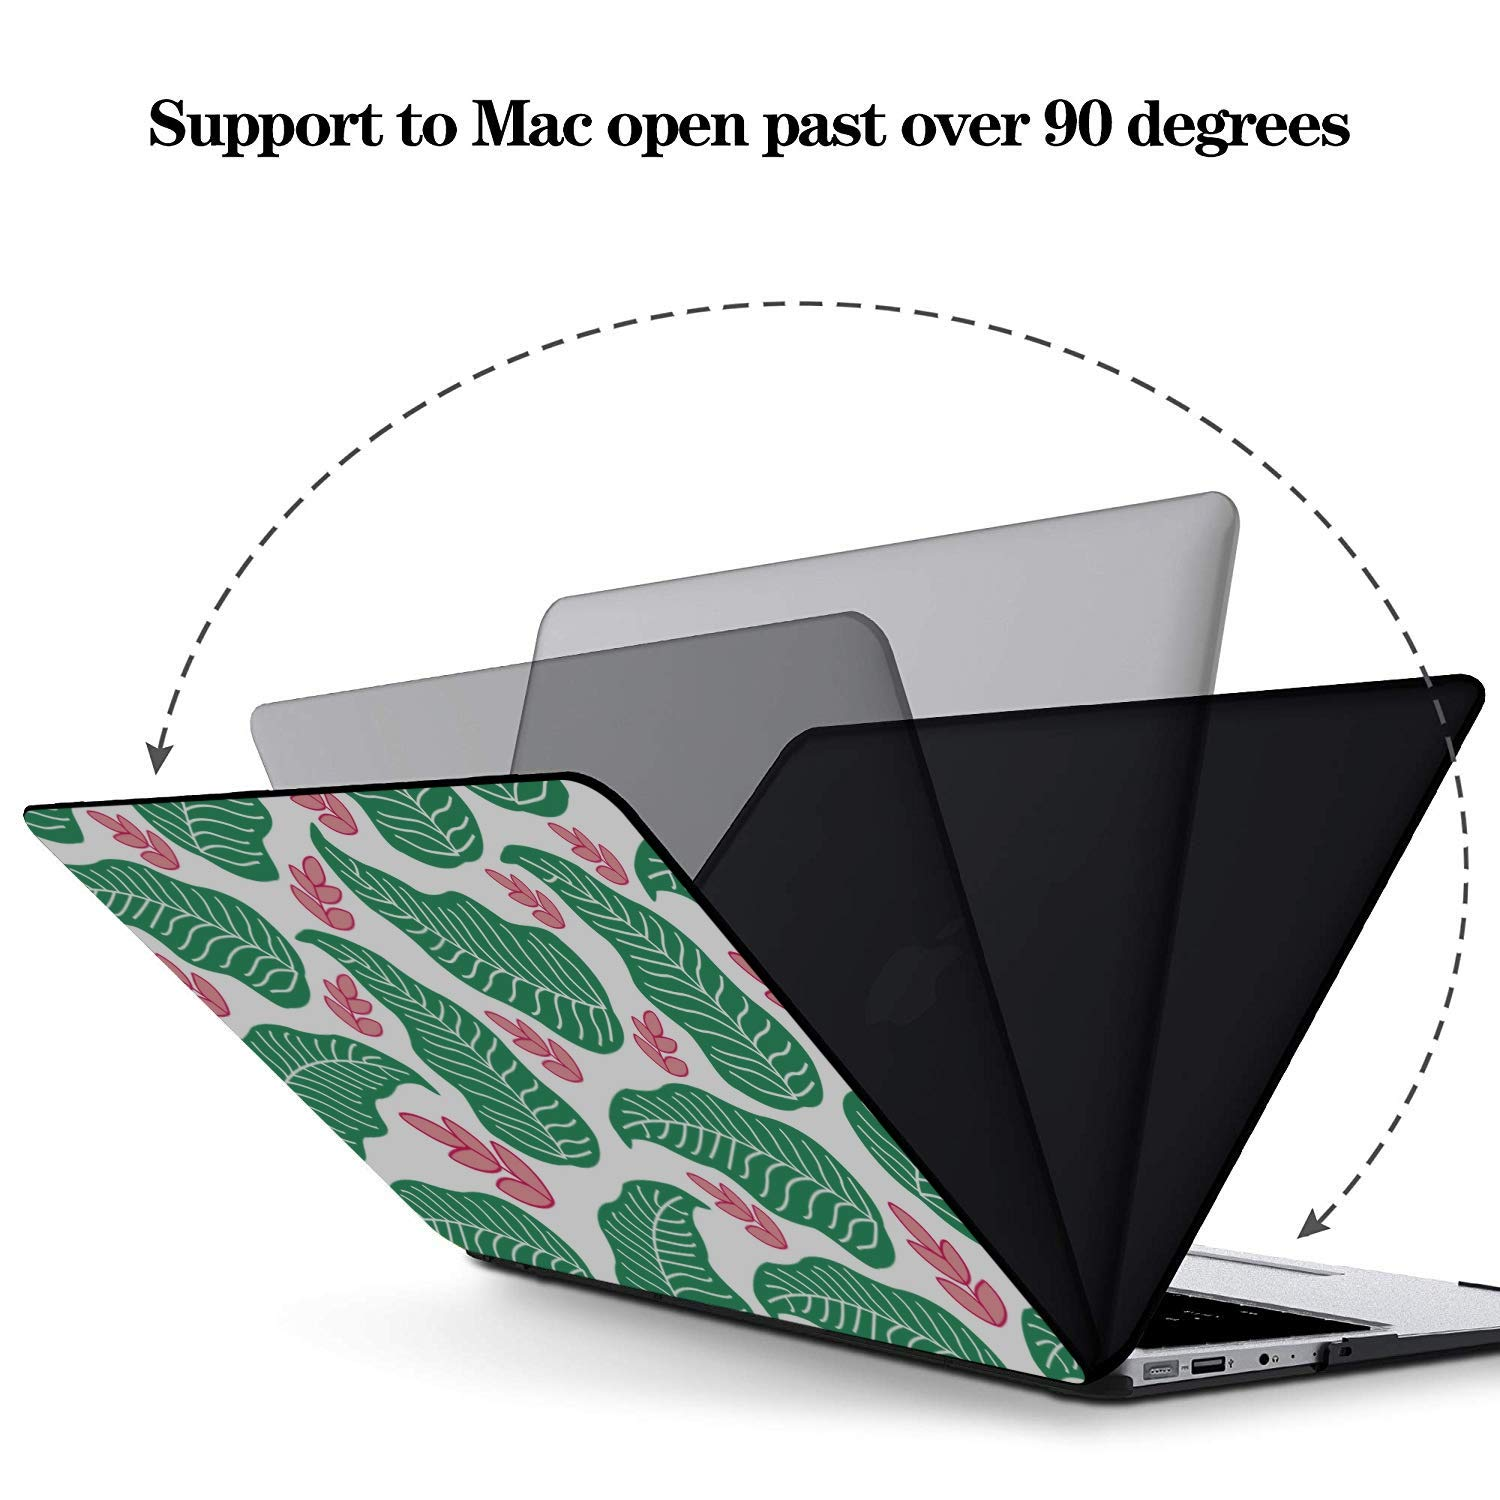 MacBook Pro Protector Summer Romantic Love Pear Cat Green Leaf Plastic Hard Shell Compatible Mac Air 11 Pro 13 15 2018 MacBook Pro Case Protection for MacBook 2016-2019 Version